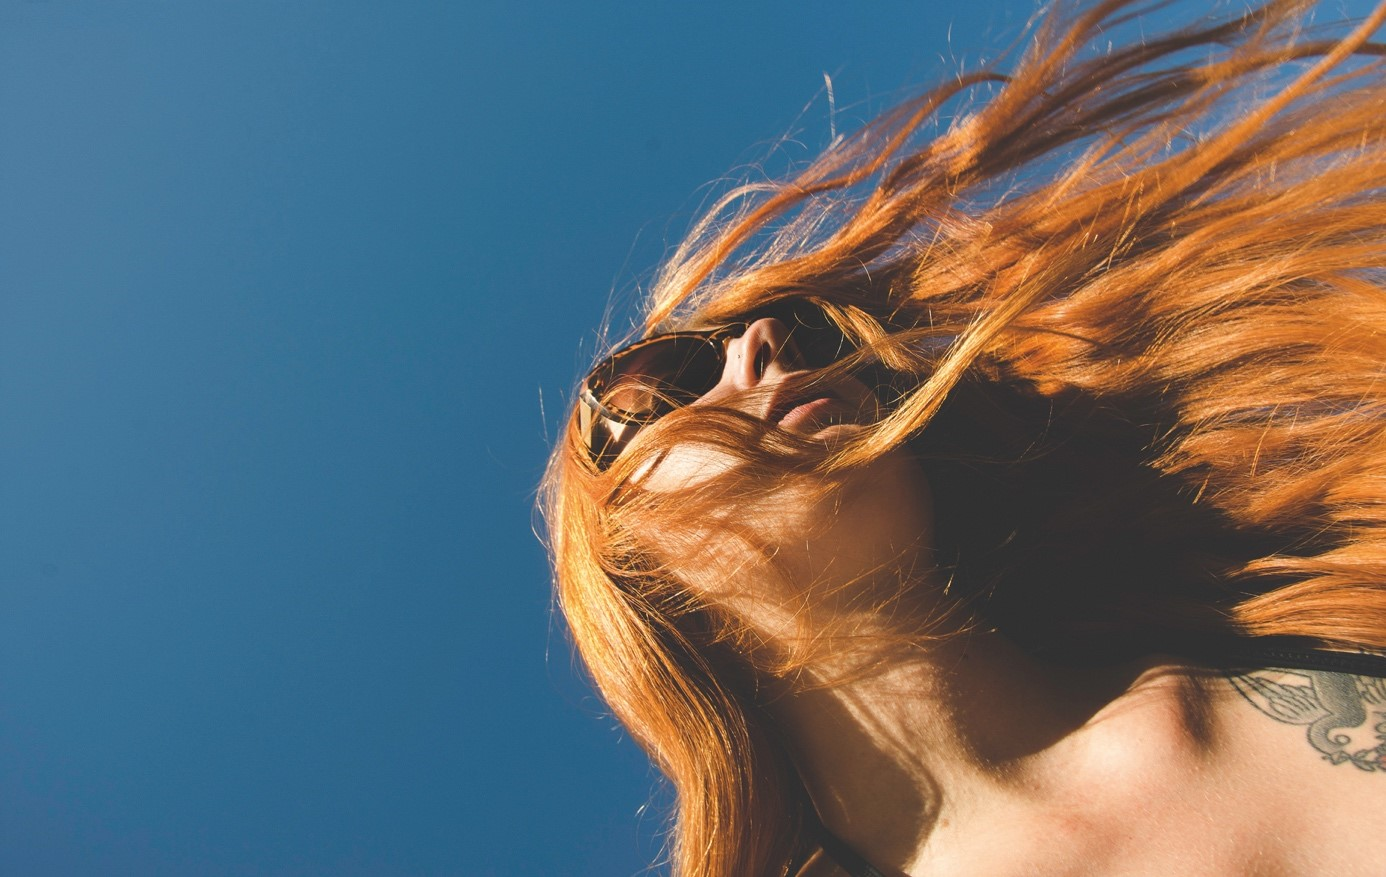 Red headed girl with a blue background, hair is swying in the wind, girl is wearing sunglasses